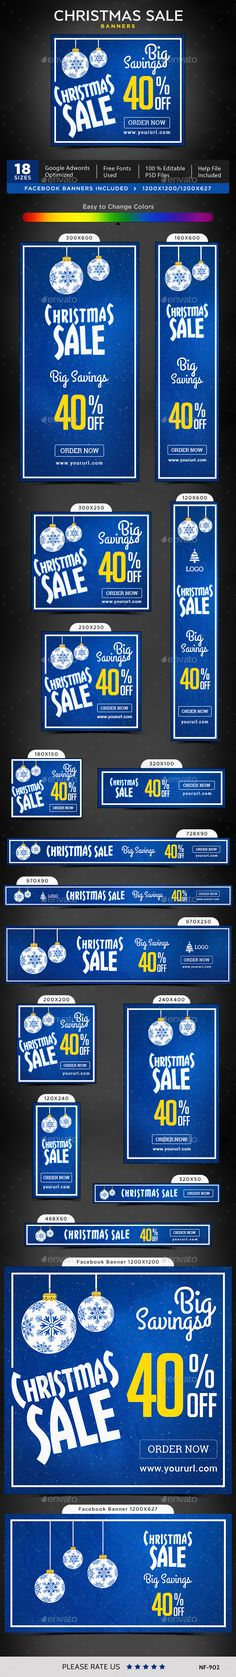 Christmas Sale Web Banners Template PSD #design #ads Download: http://graphicriver.net/item/christmas-sale-banners/13963948?ref=ksioks